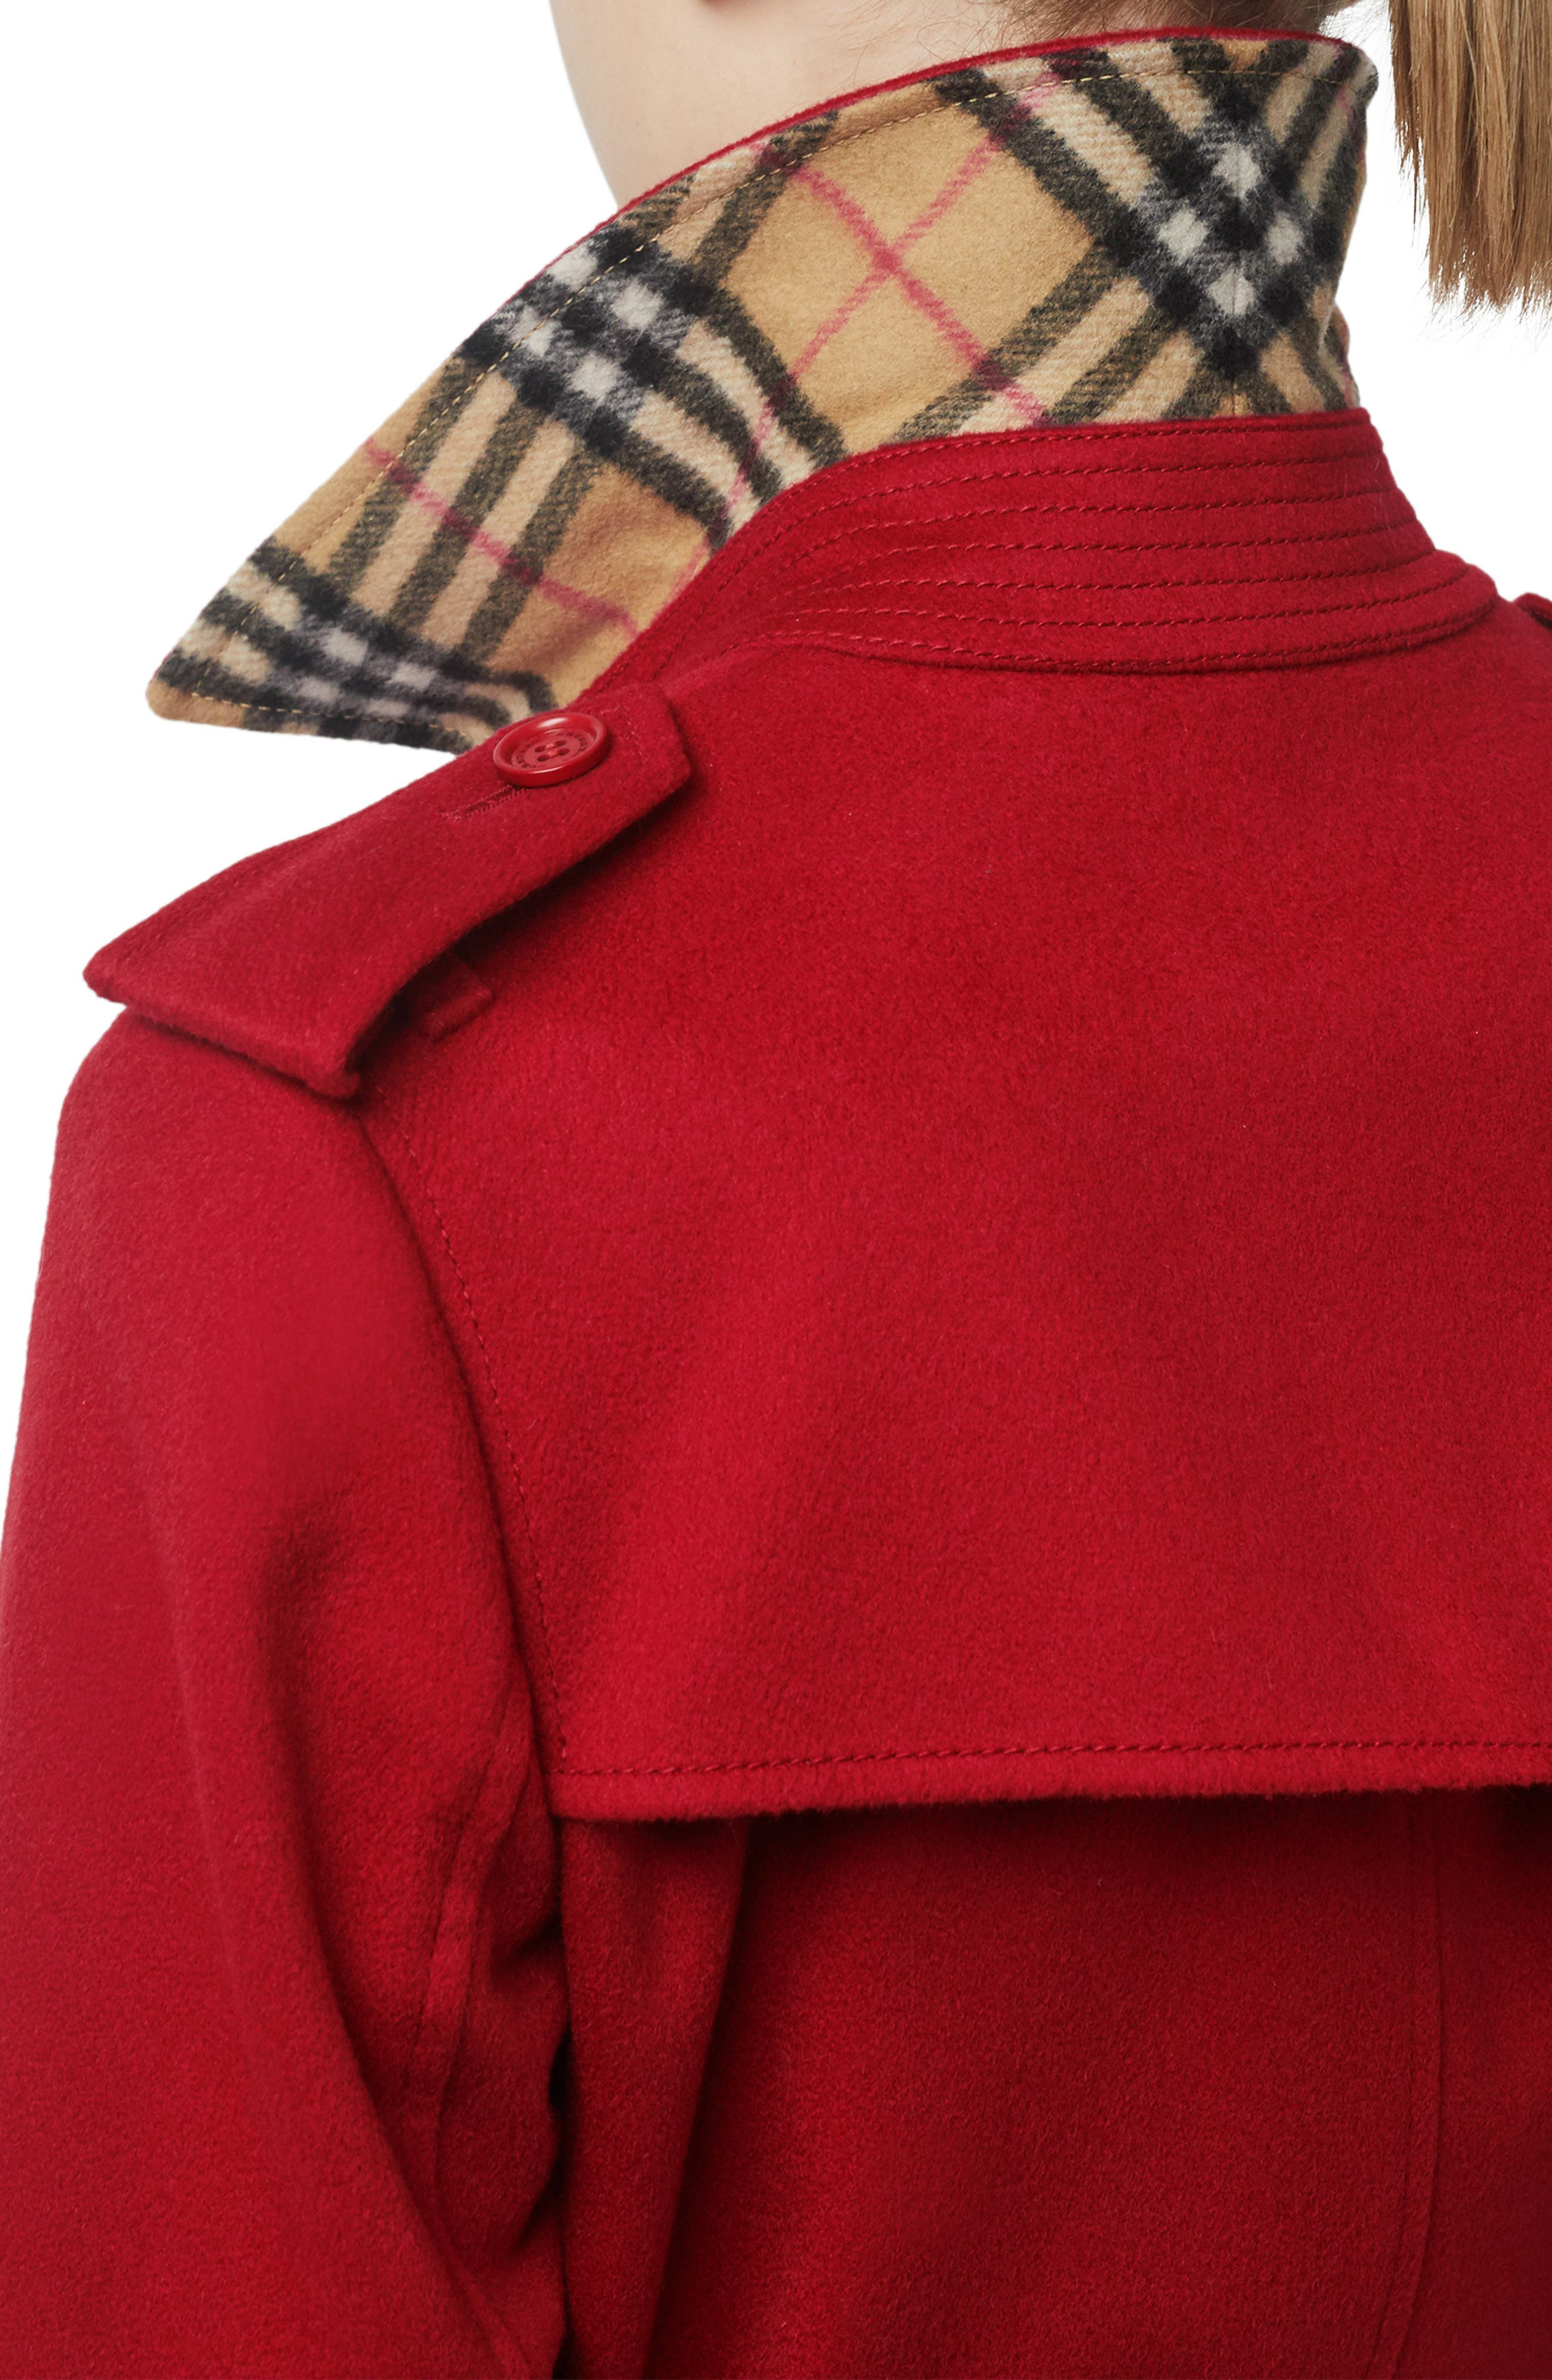 BURBERRY, Kensington Cashmere Trench Coat, Alternate thumbnail 4, color, PARADE RED